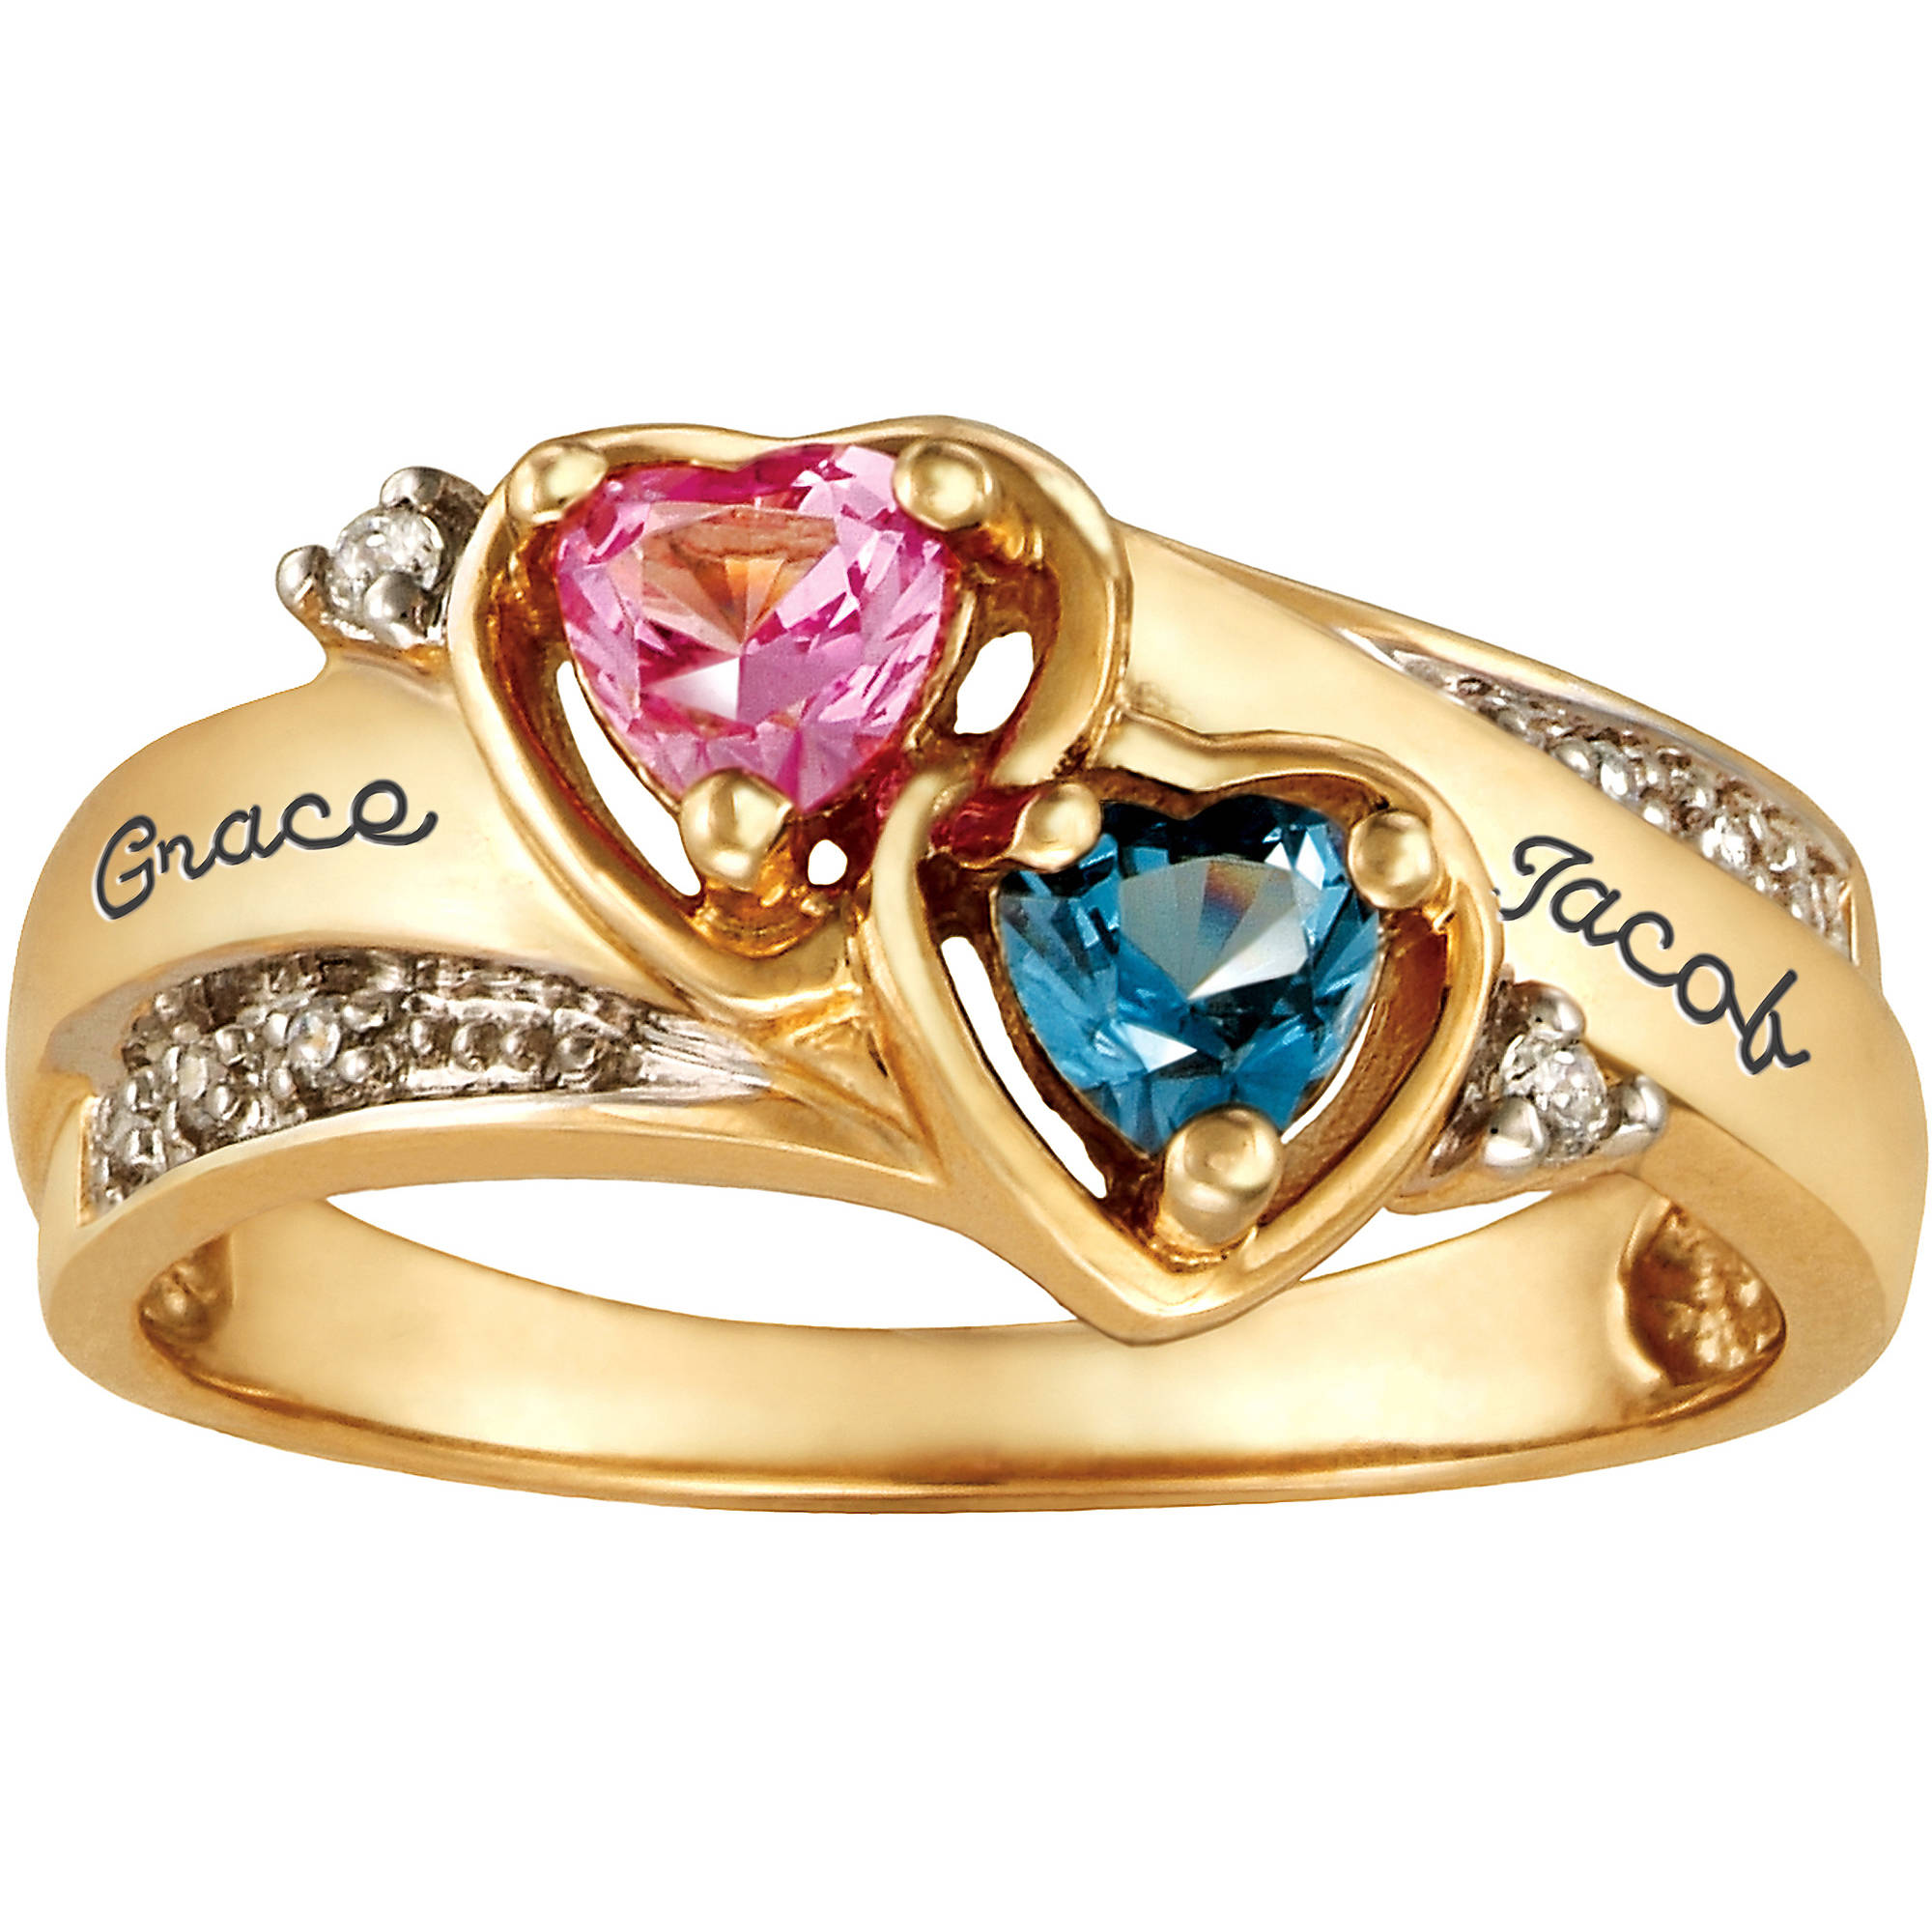 Personalized Keepsake Be Mine Promise Ring with Birthstones